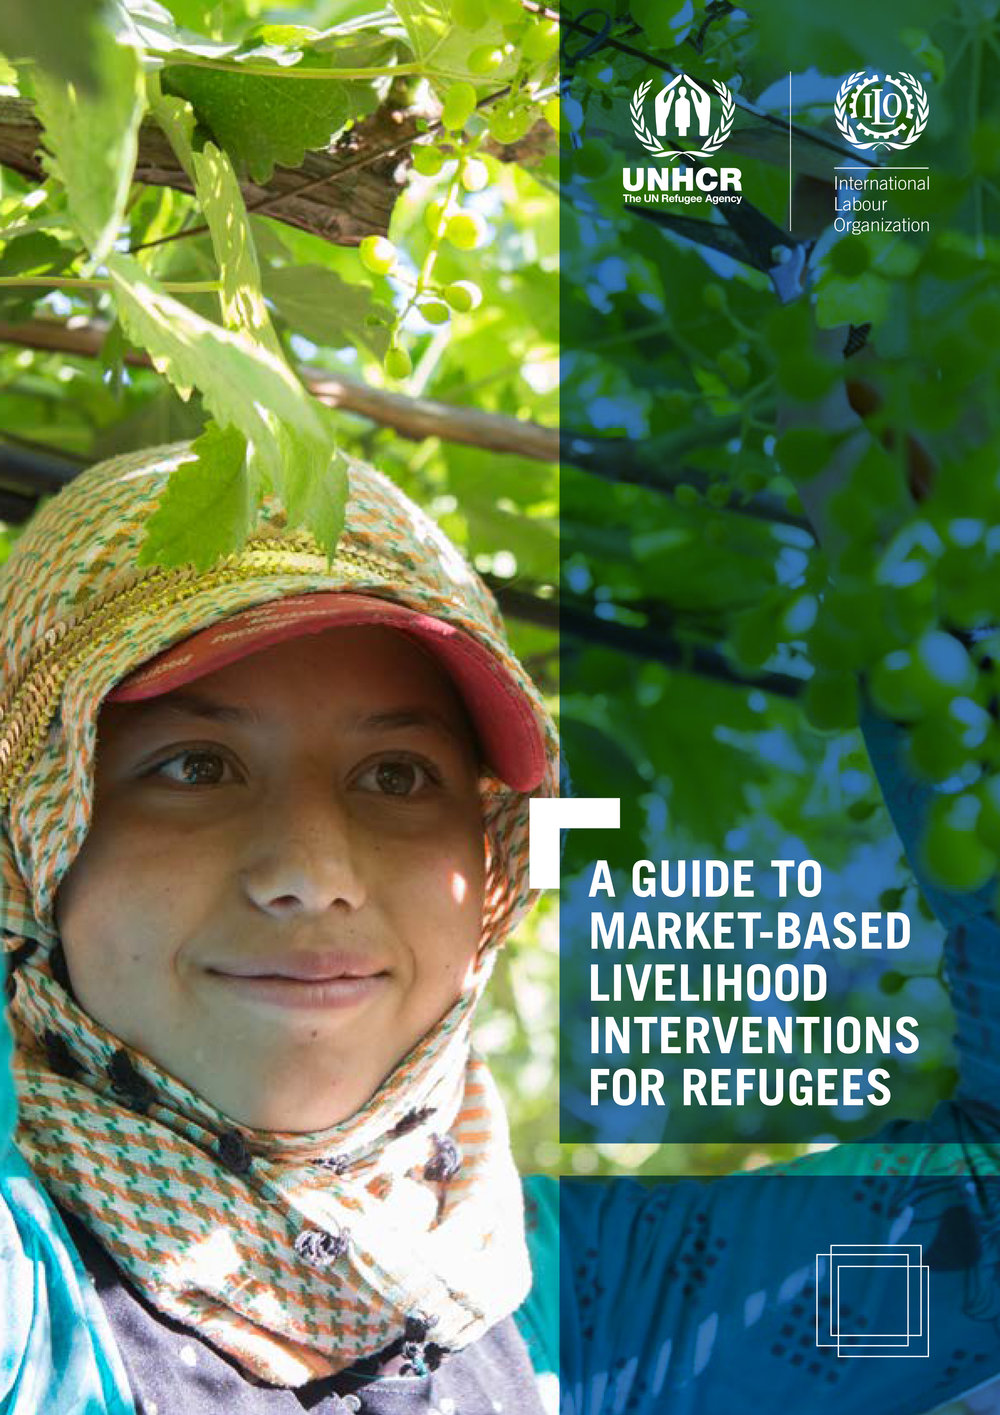 A Guide To Market Based Livelihood Interventions for Refugees-1.jpg